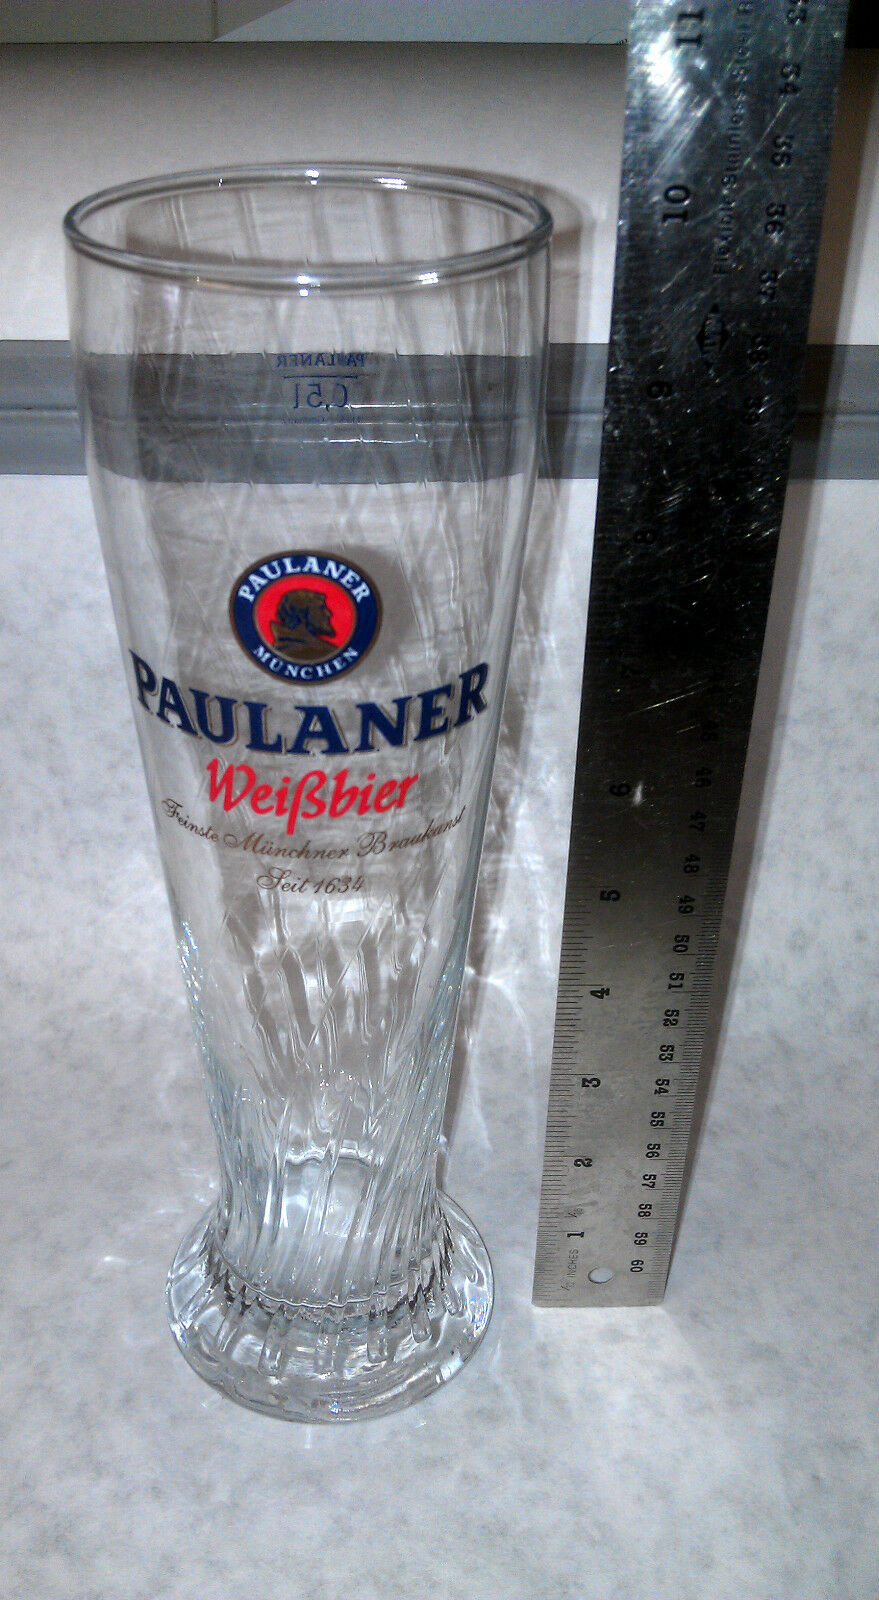 paulaner munchen beer glass 5l tall fluted beer glass new seit 1634 weissbier picclick. Black Bedroom Furniture Sets. Home Design Ideas